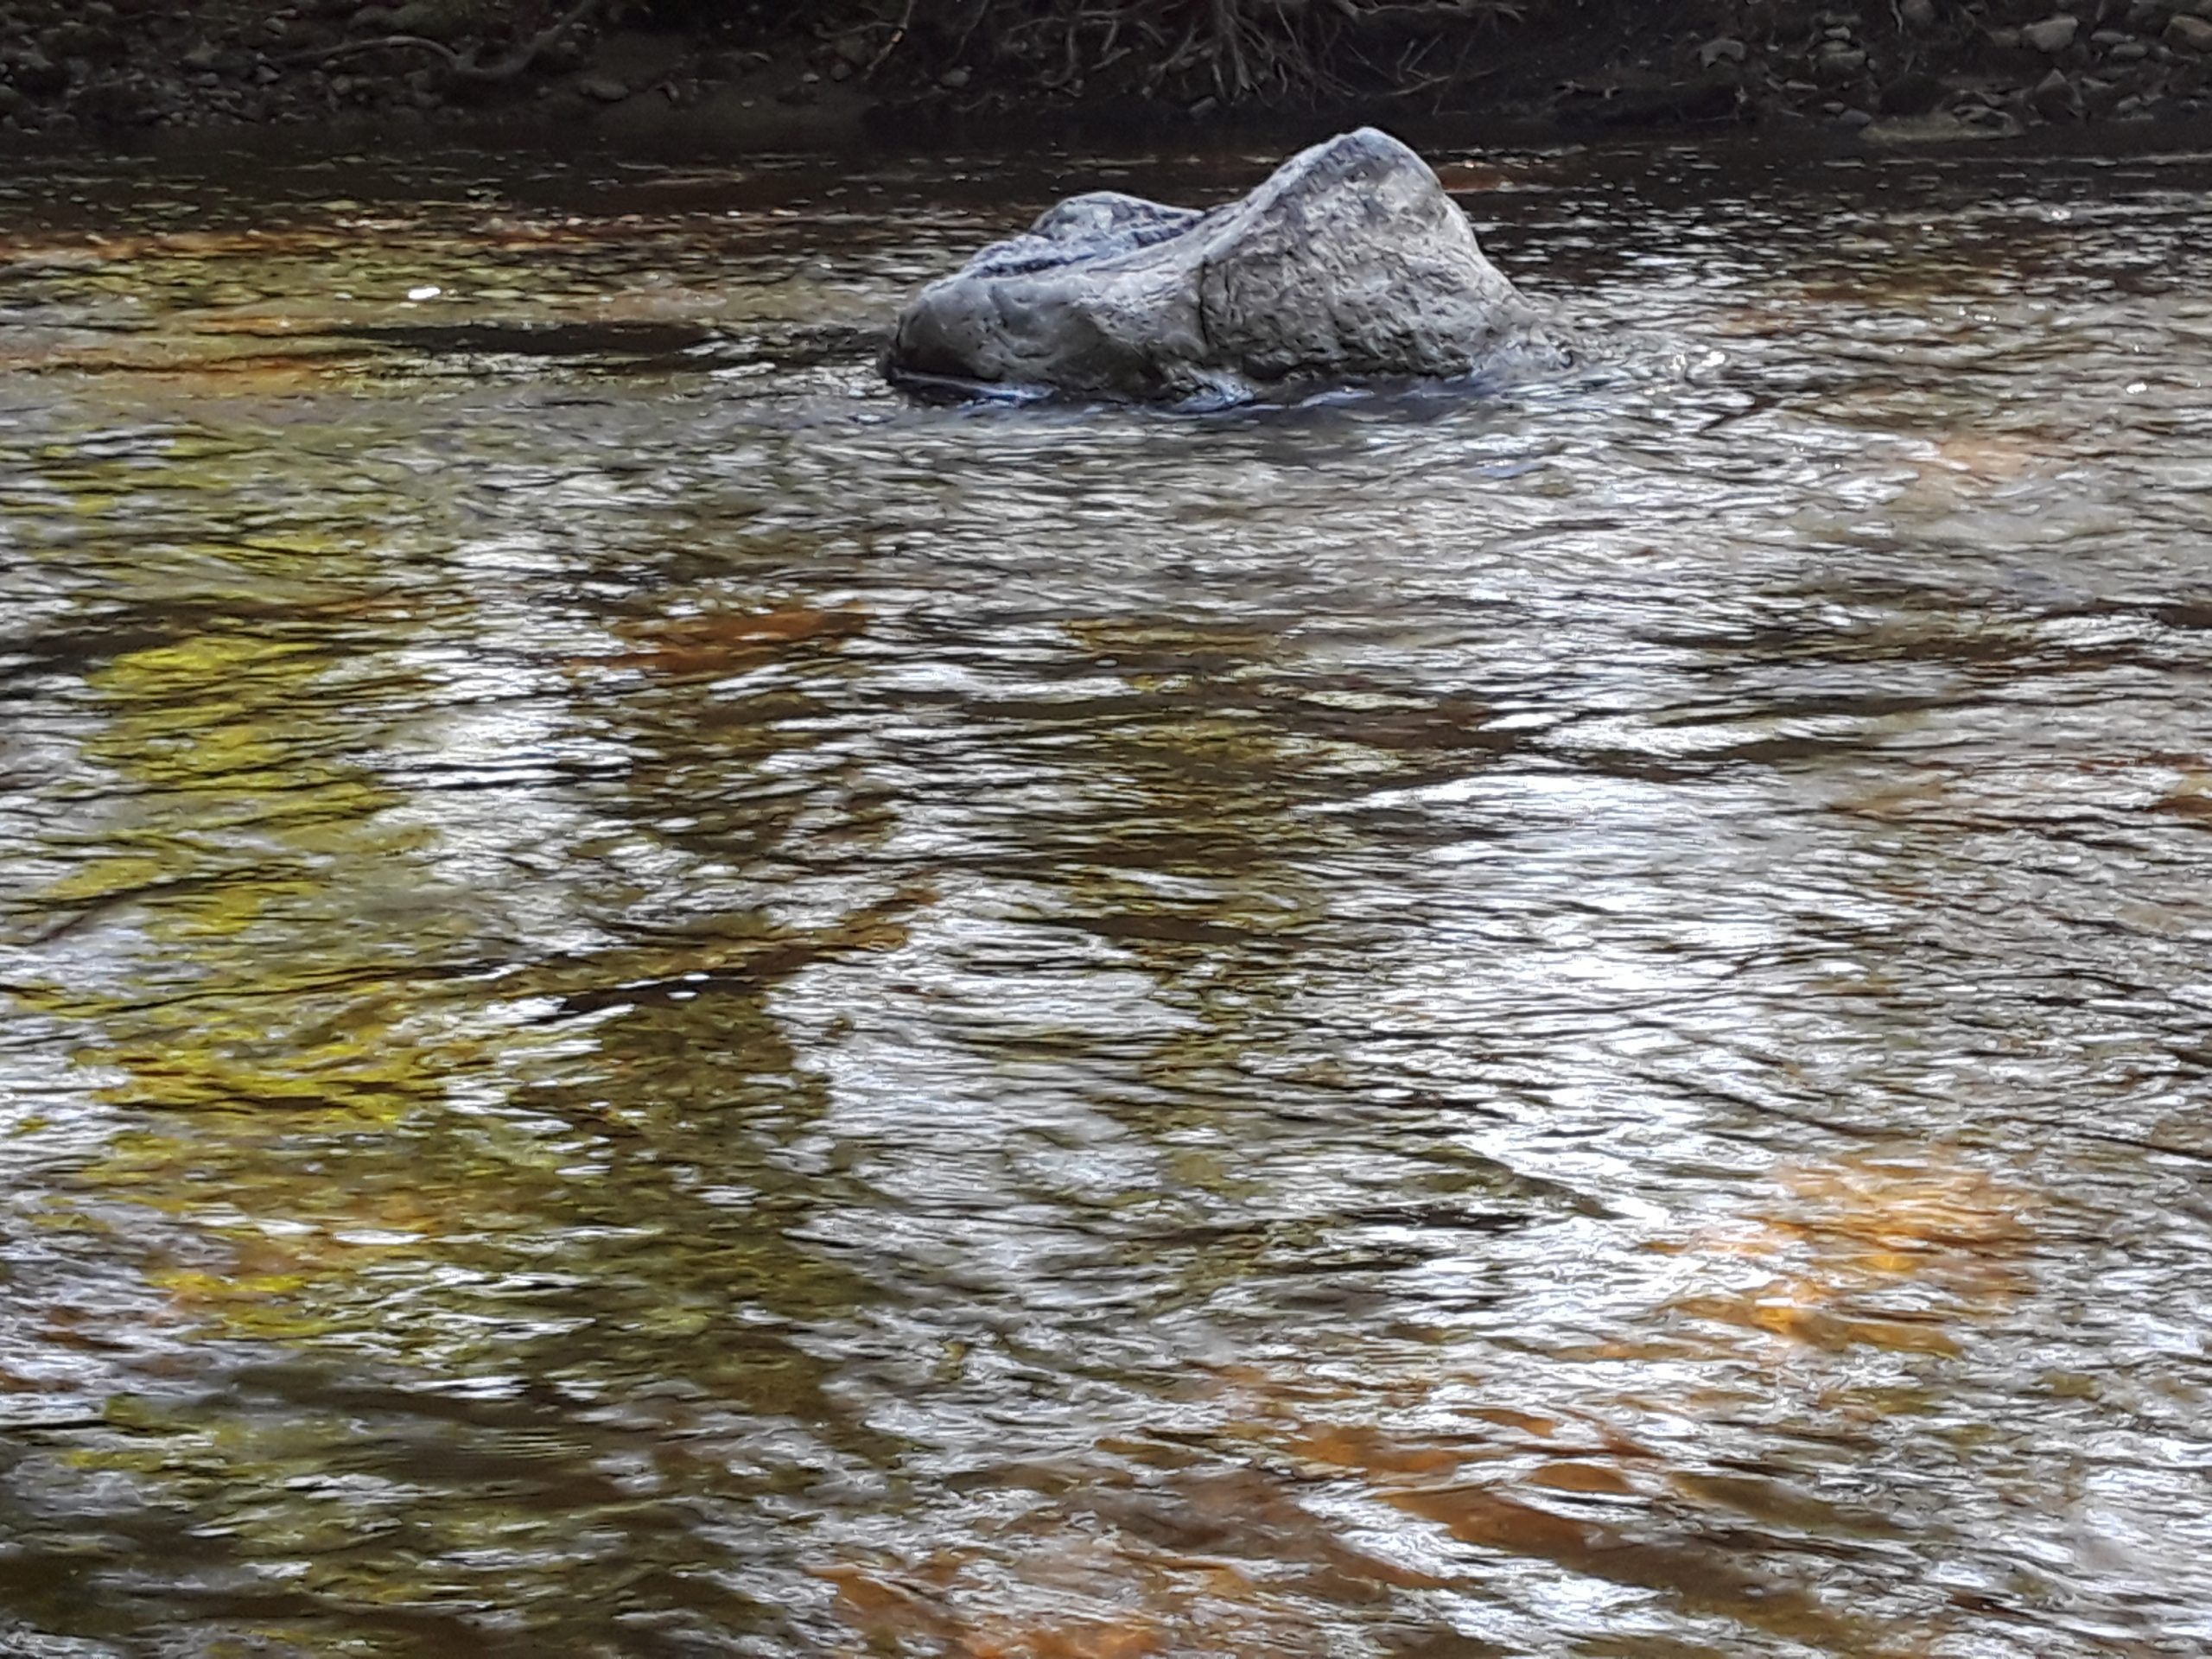 Seat-shaped rock in a shallow stream.